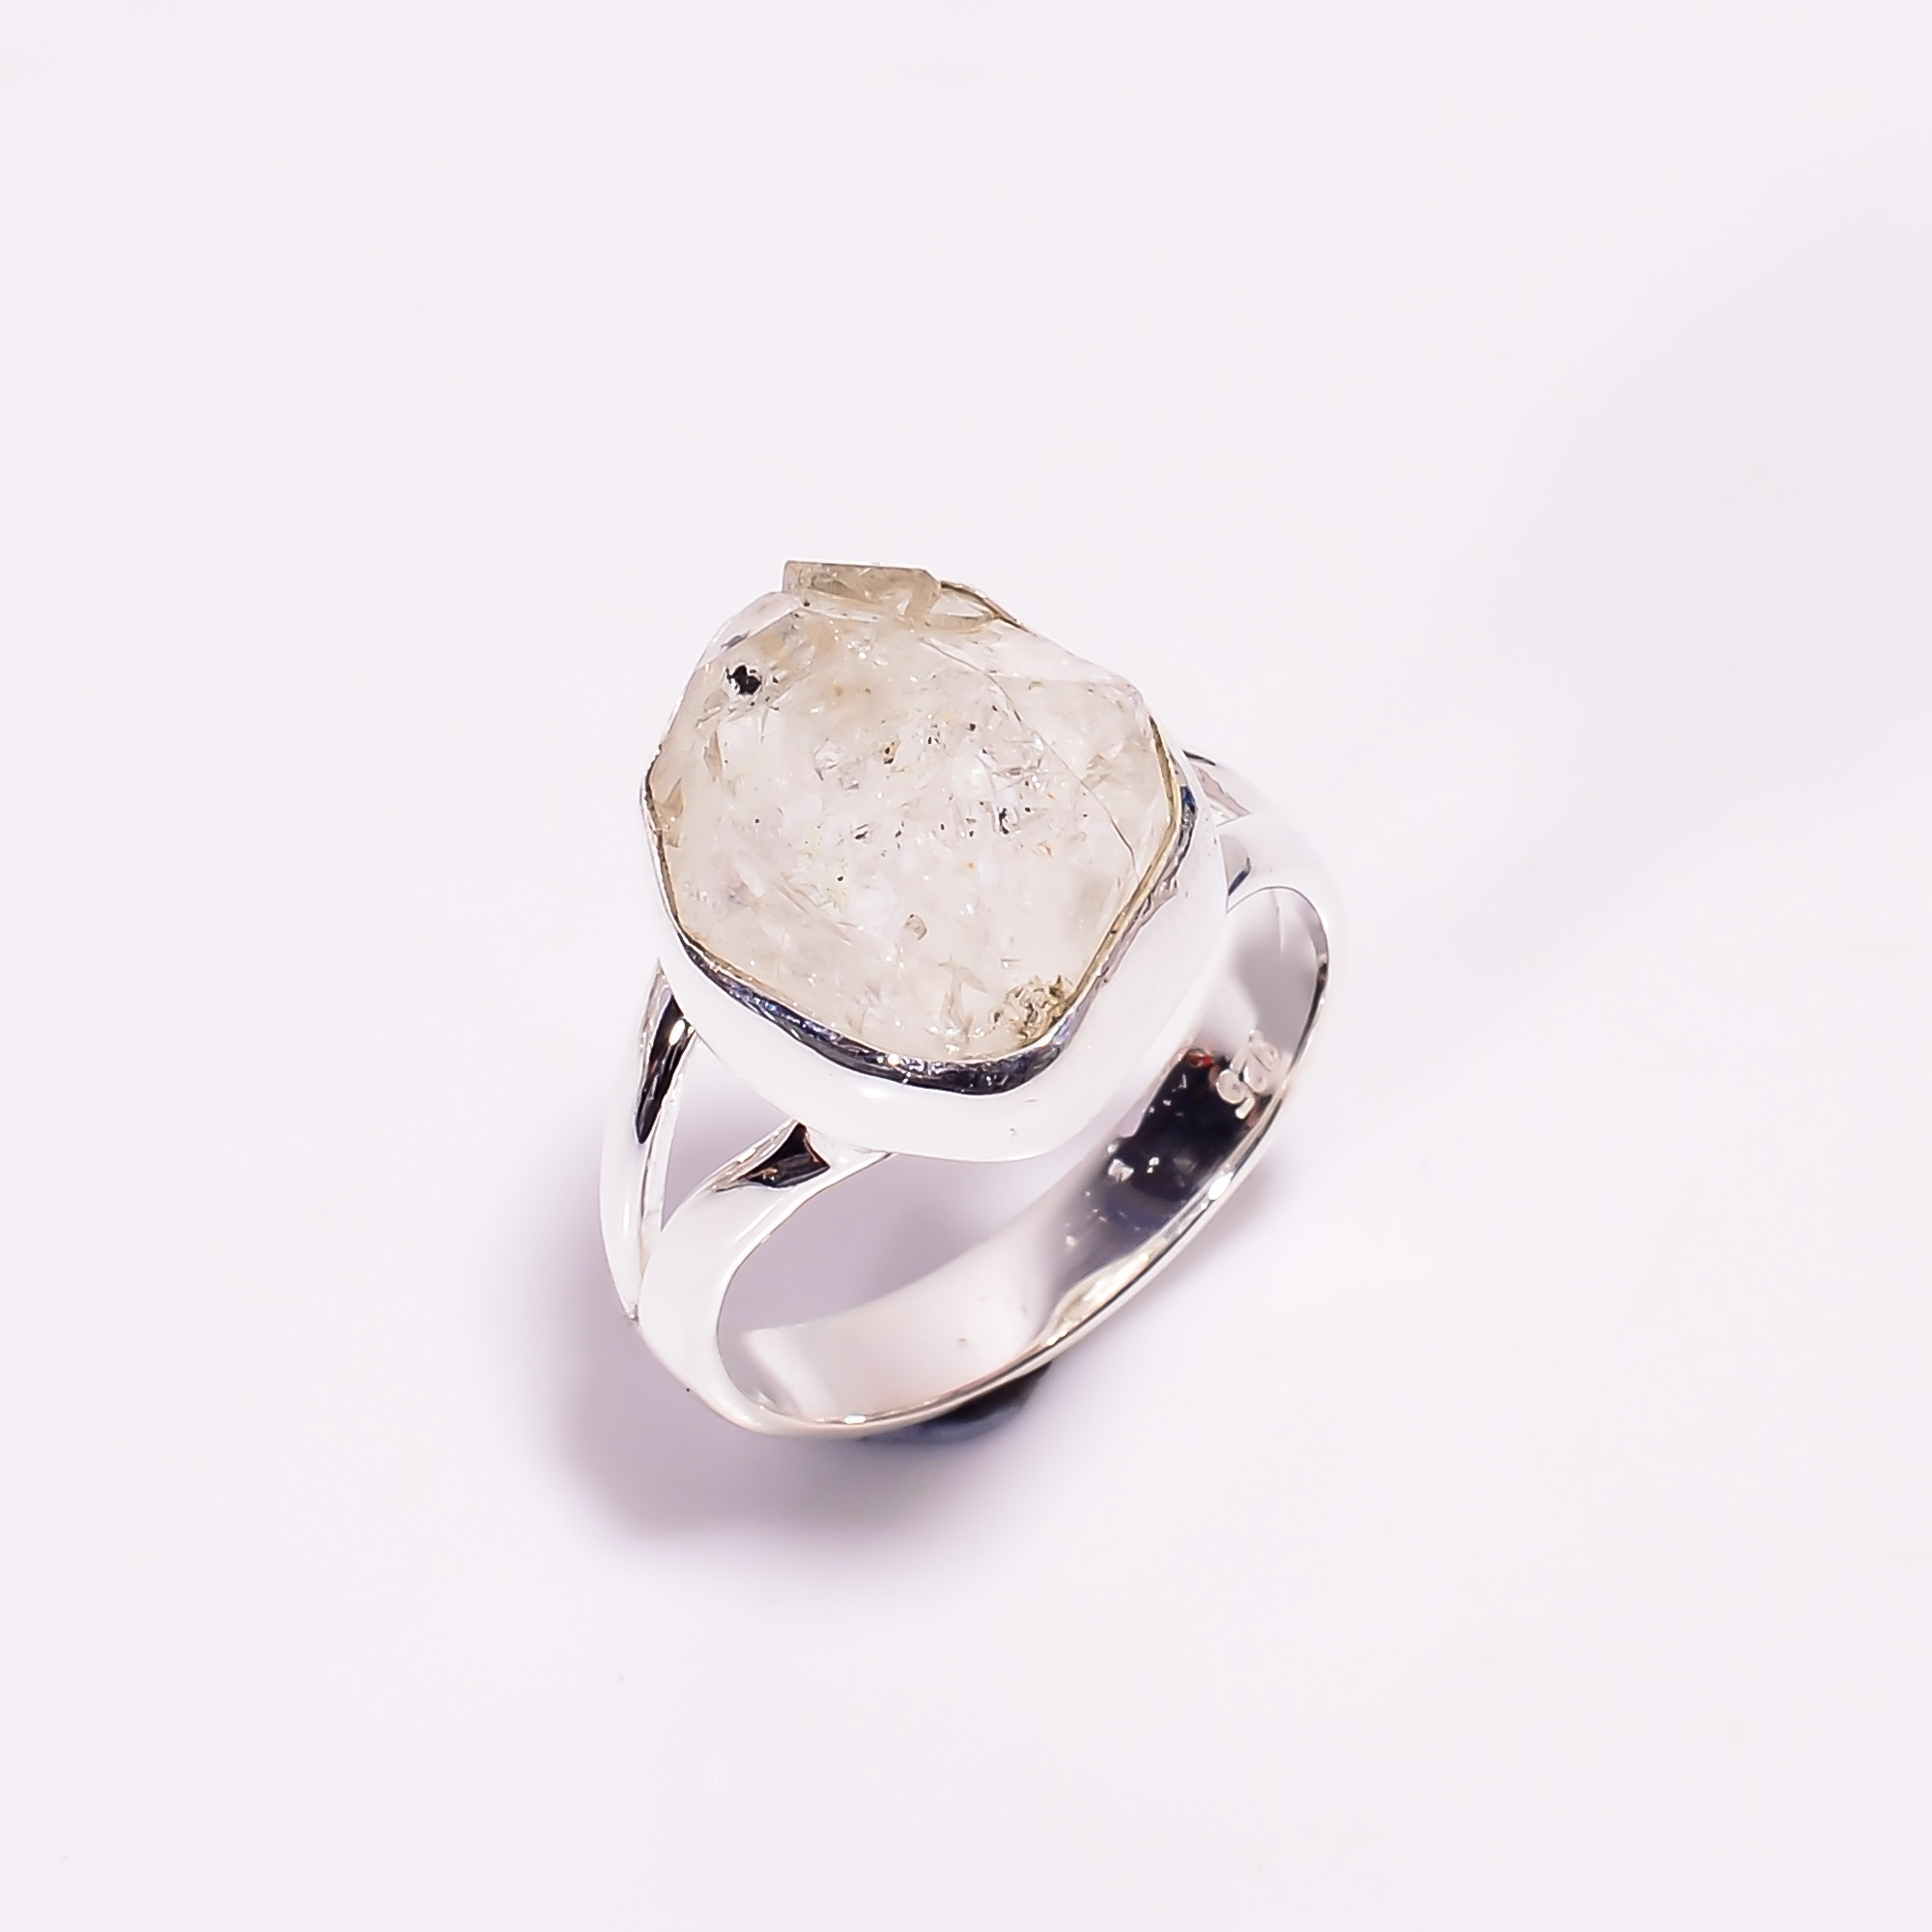 Natural Herkimer Diamond 925 Sterling Silver Ring Size US 7.75